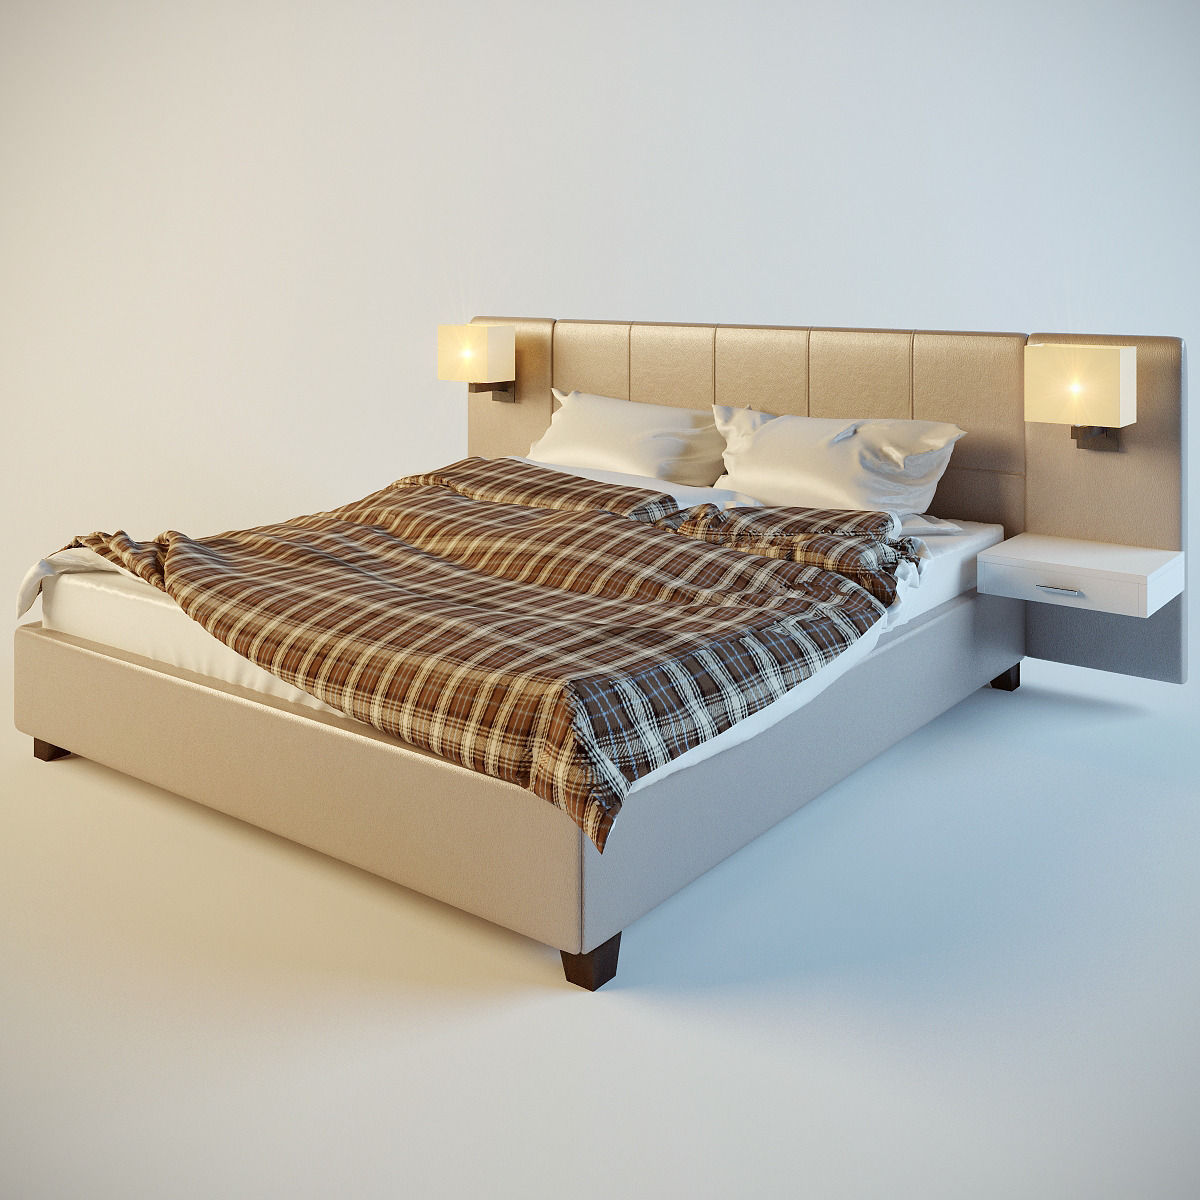 Bed for bedroom 3D Model 3DS - CGTrader.com on New Model Bedroom  id=25539